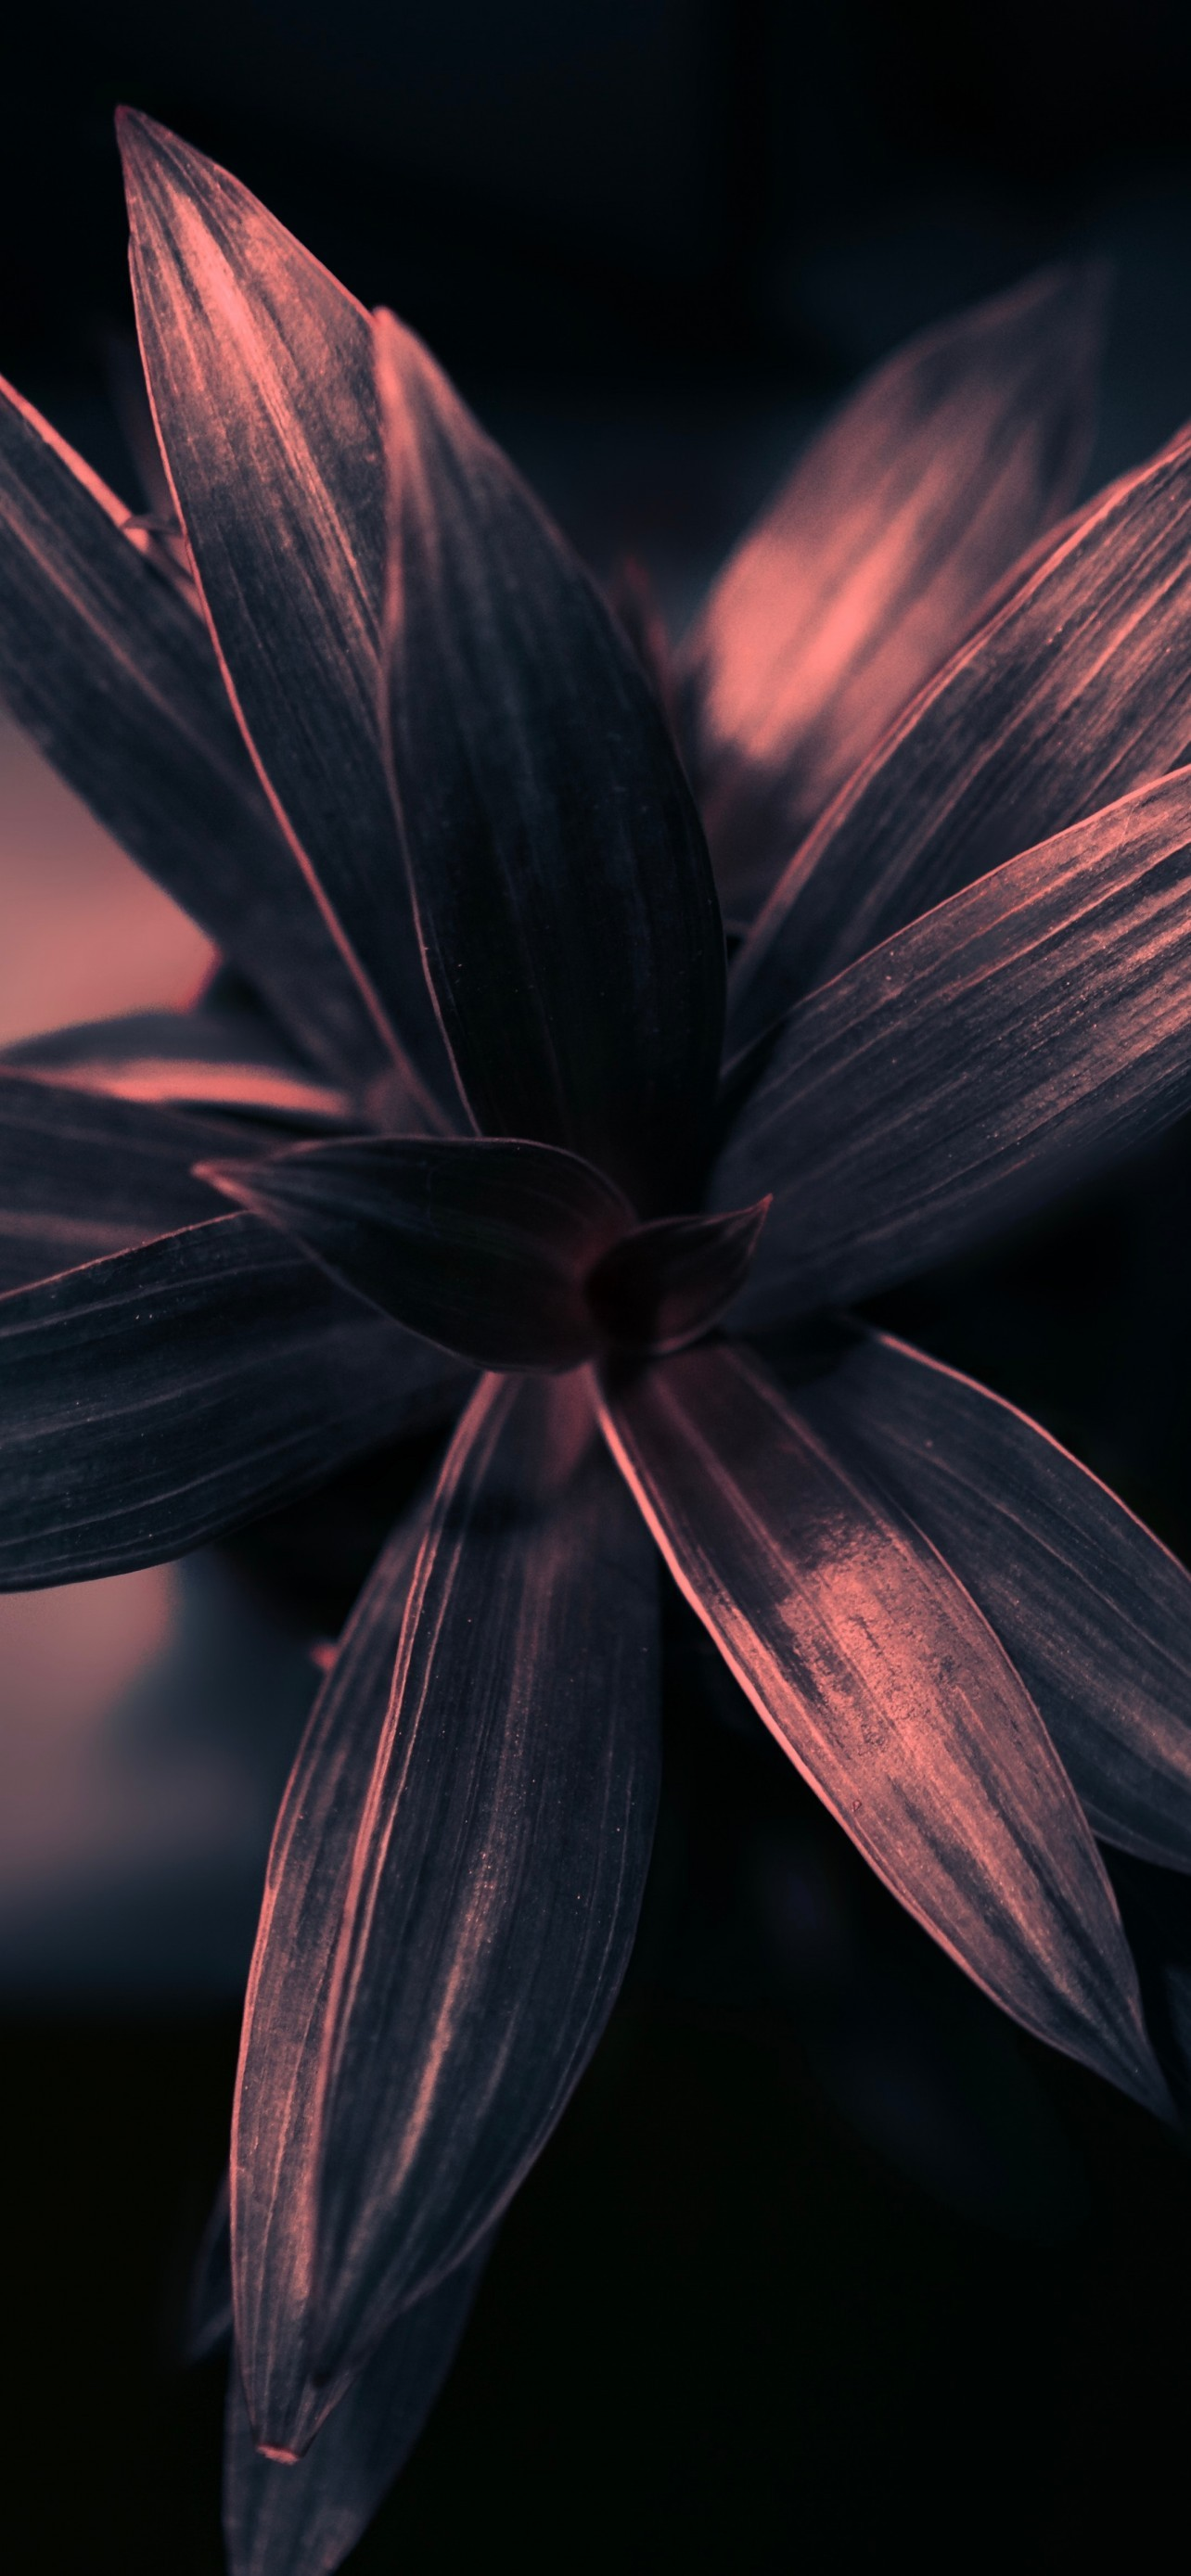 Download 1284x2778 Plant Petals Leaves Gloomy Photography 1284x2778